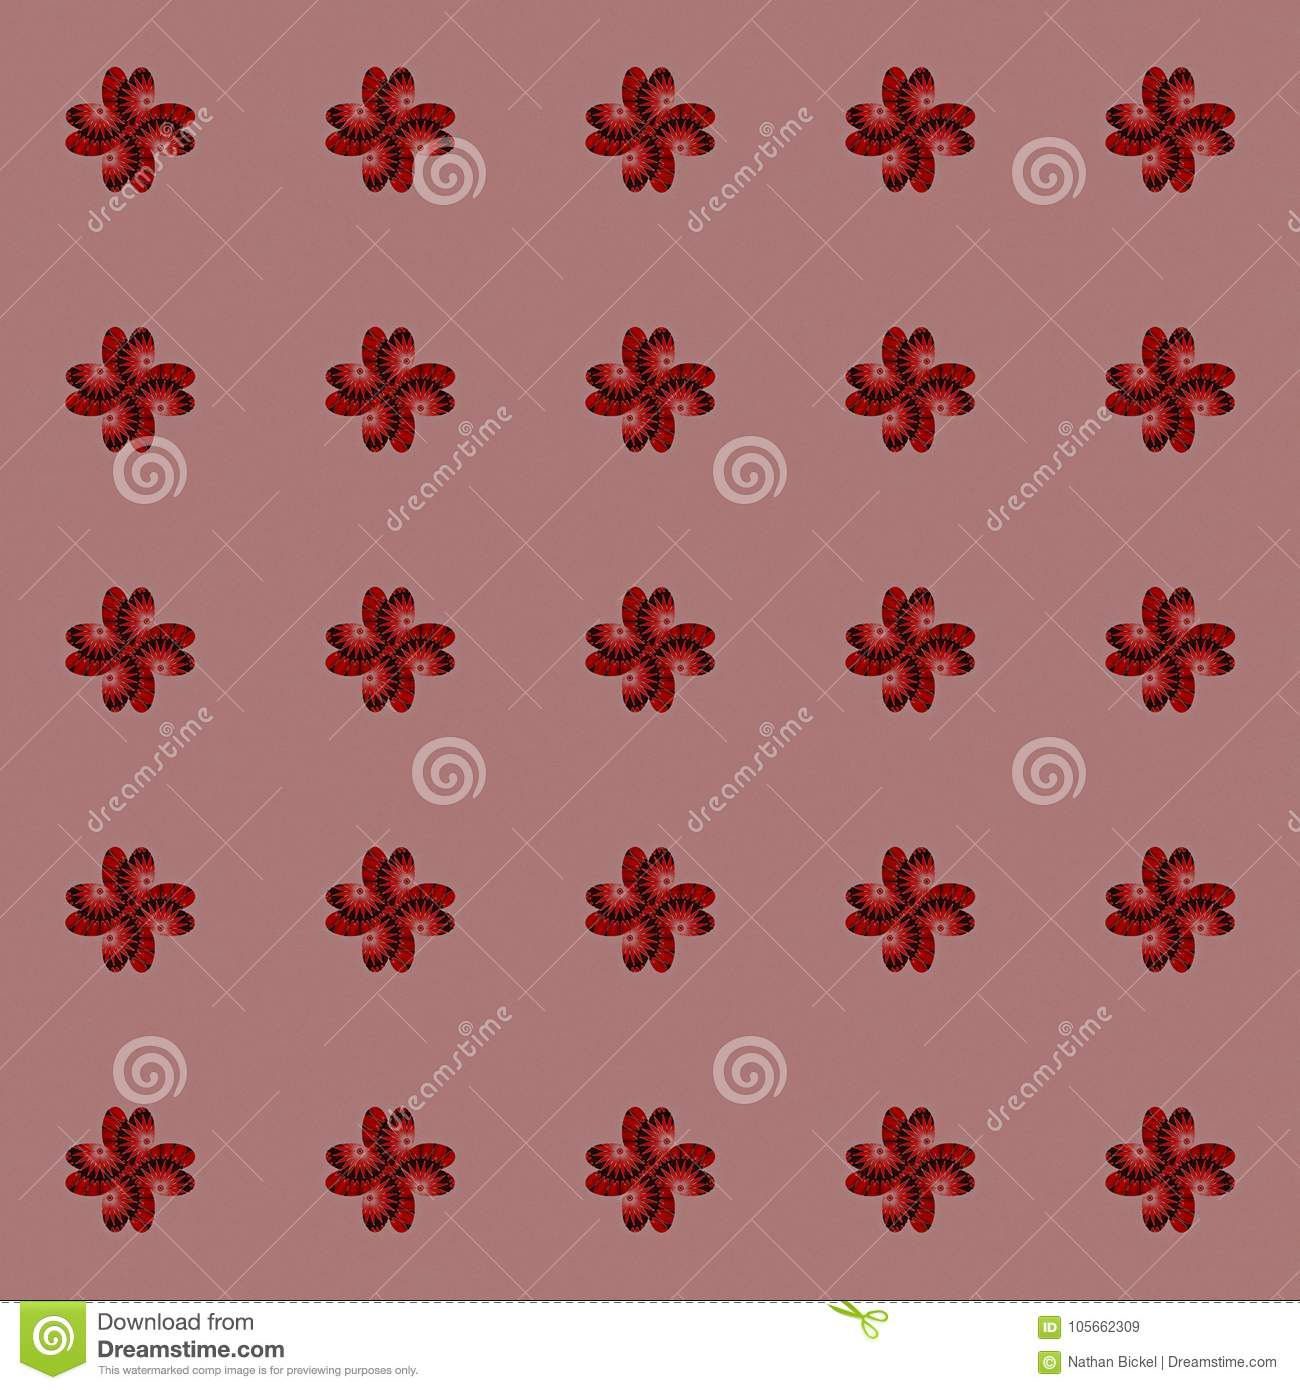 Vintage Wallpaper With Repeating Floral Design On Light